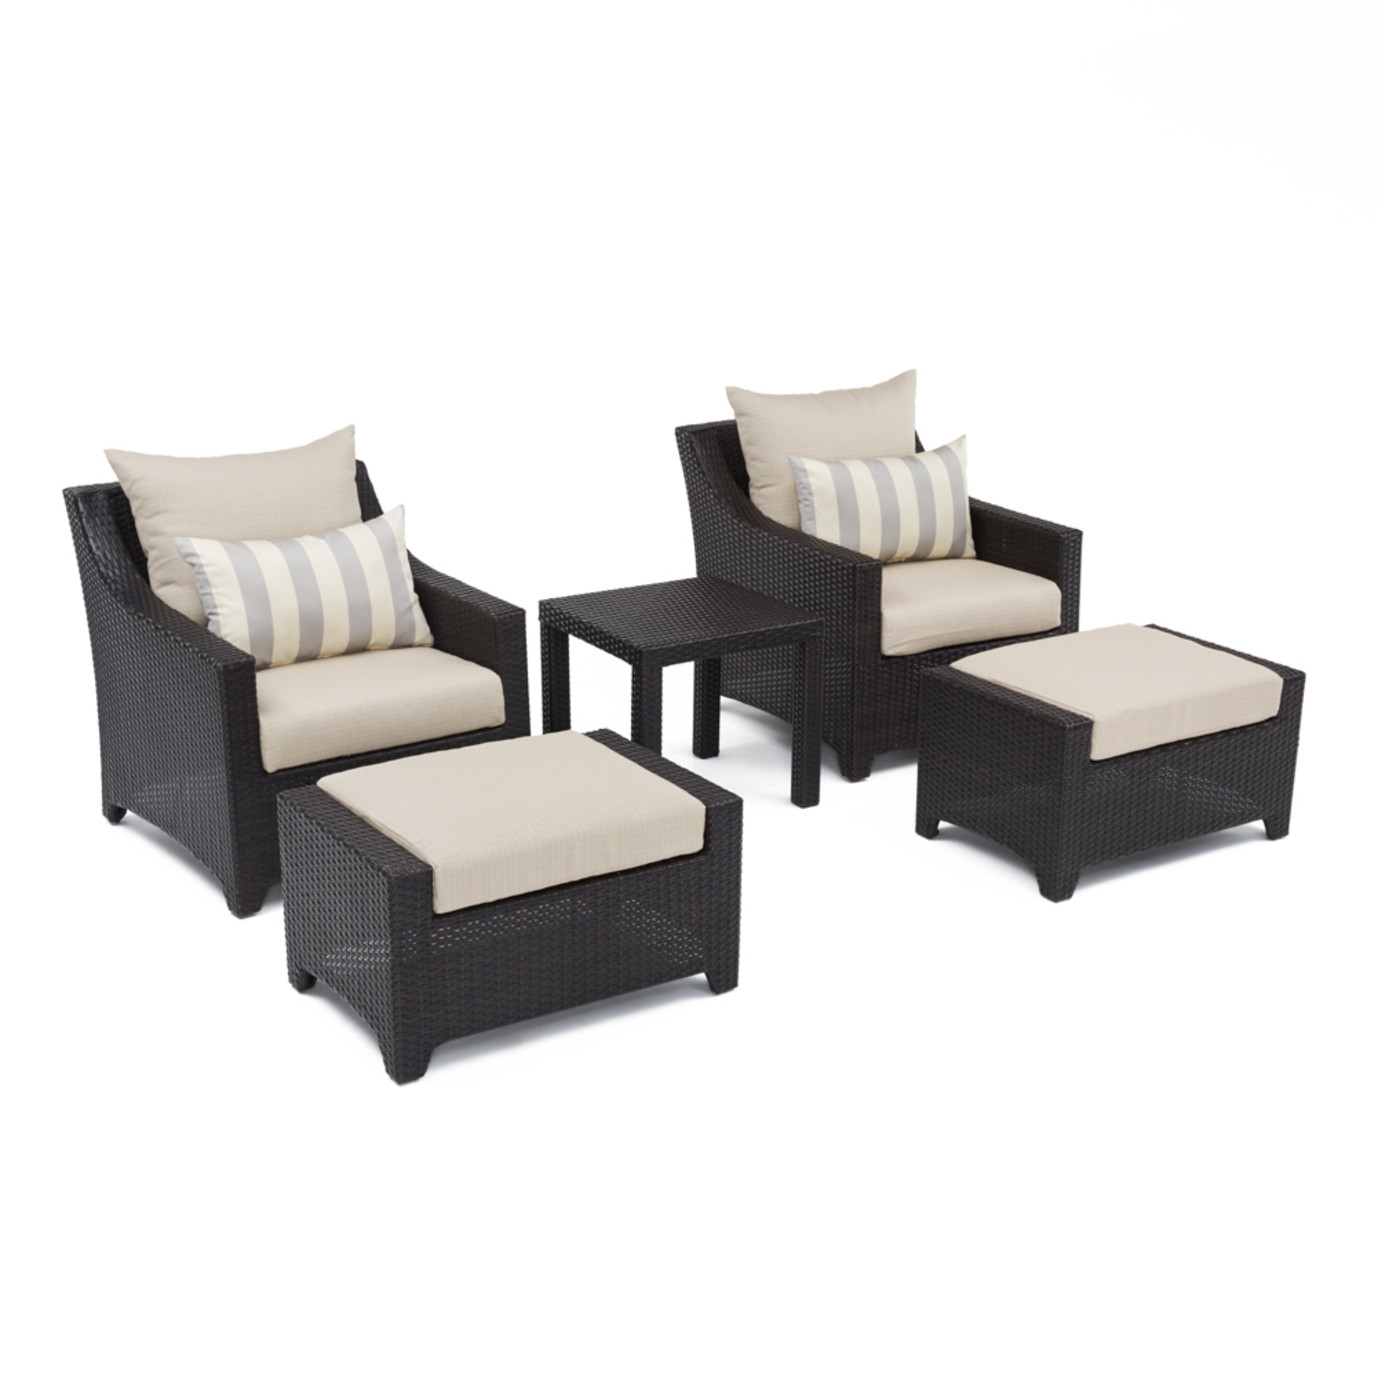 Deco™ 5 Piece Club Chair and Ottoman Set - Slate Gray